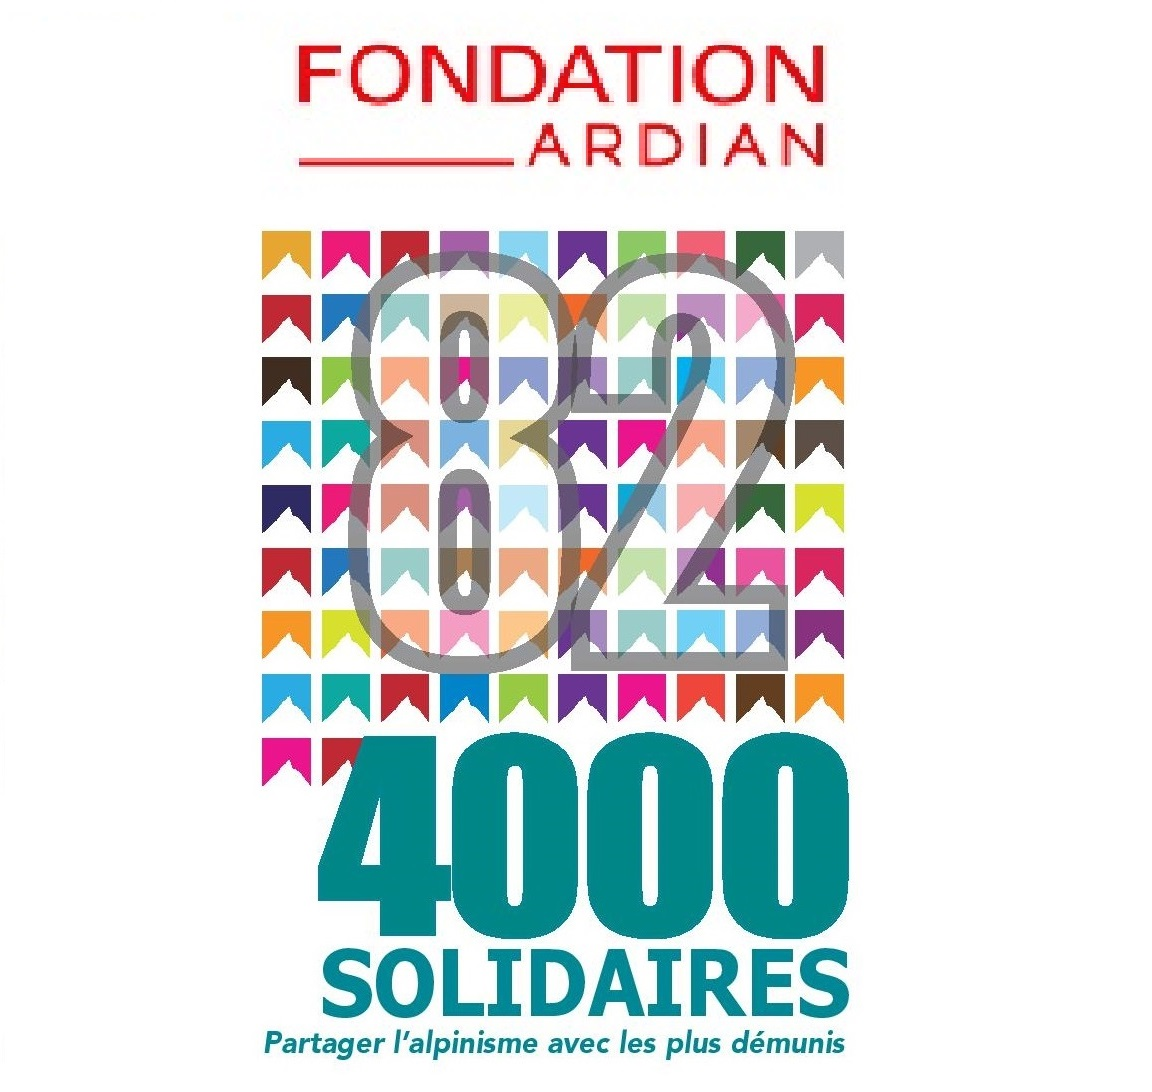 Association - 82-4000 Solidaires